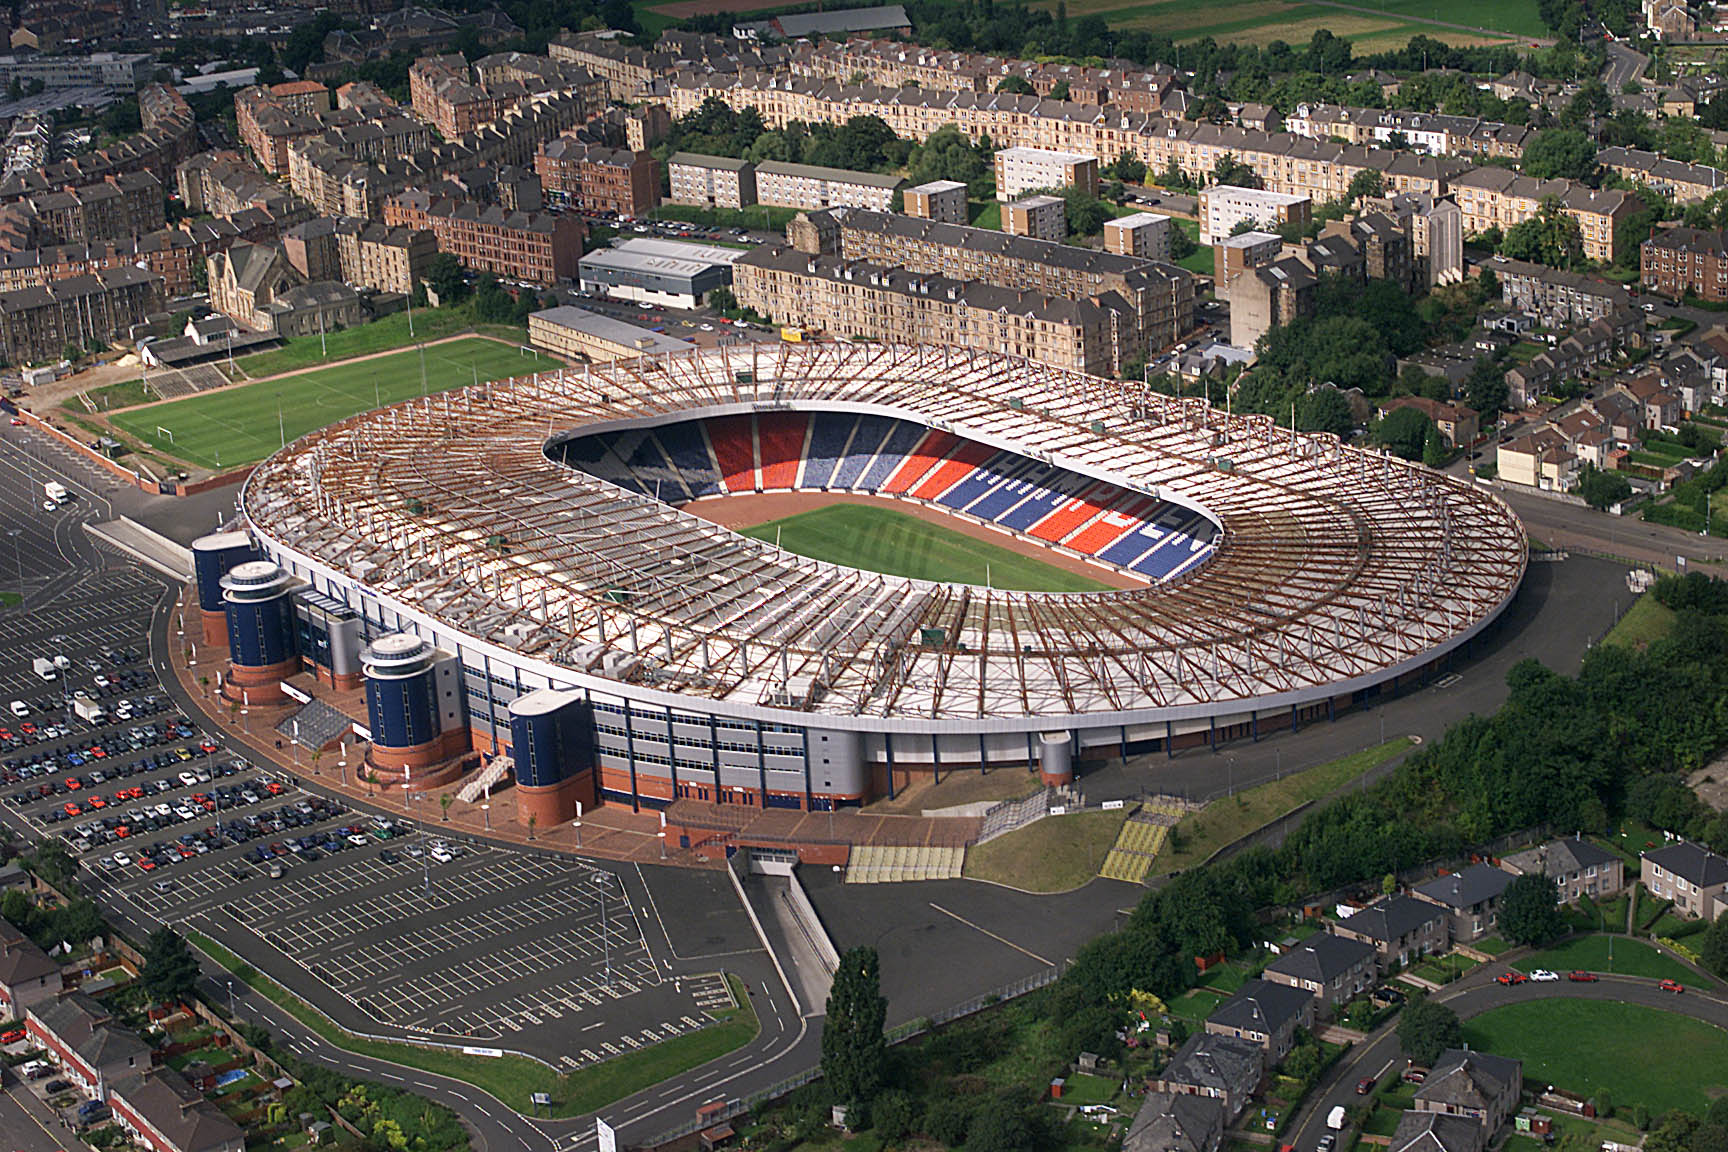 29/7/99 HAMPDEN - GLASGOW Hampden Park, Scotland's national stadium